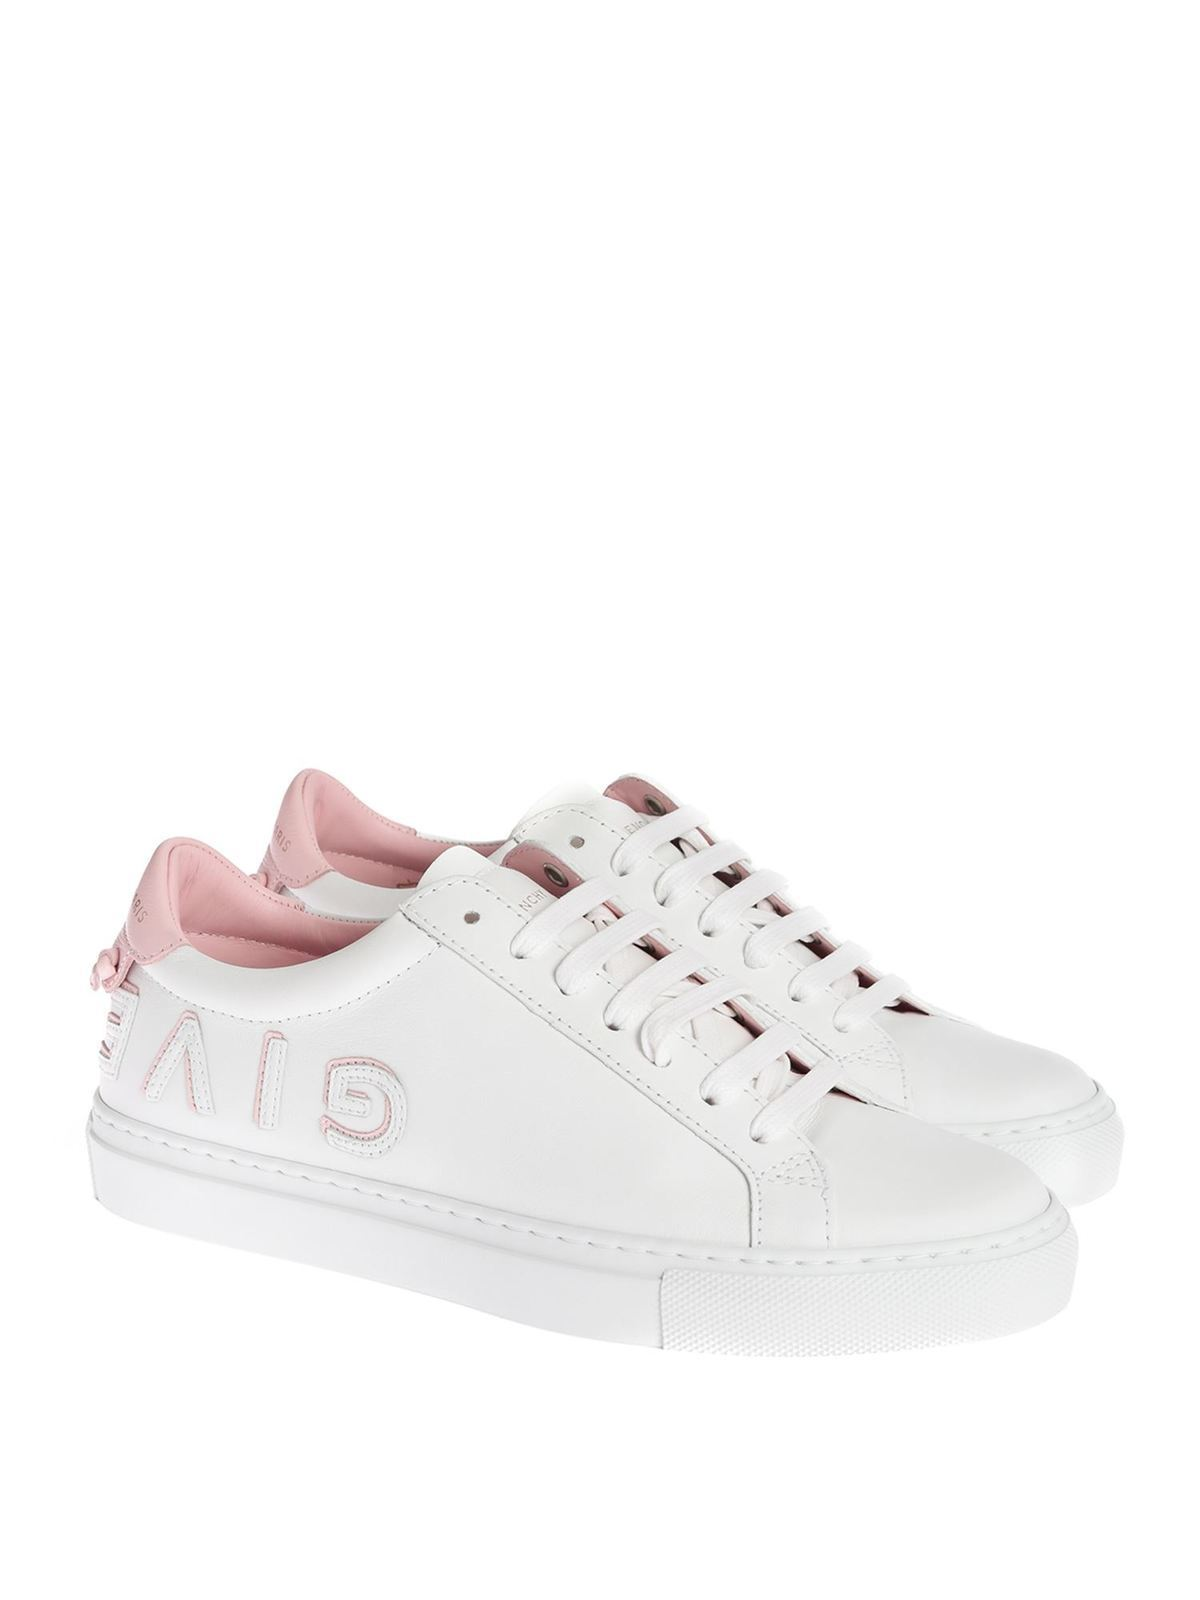 givenchy sneaker pink